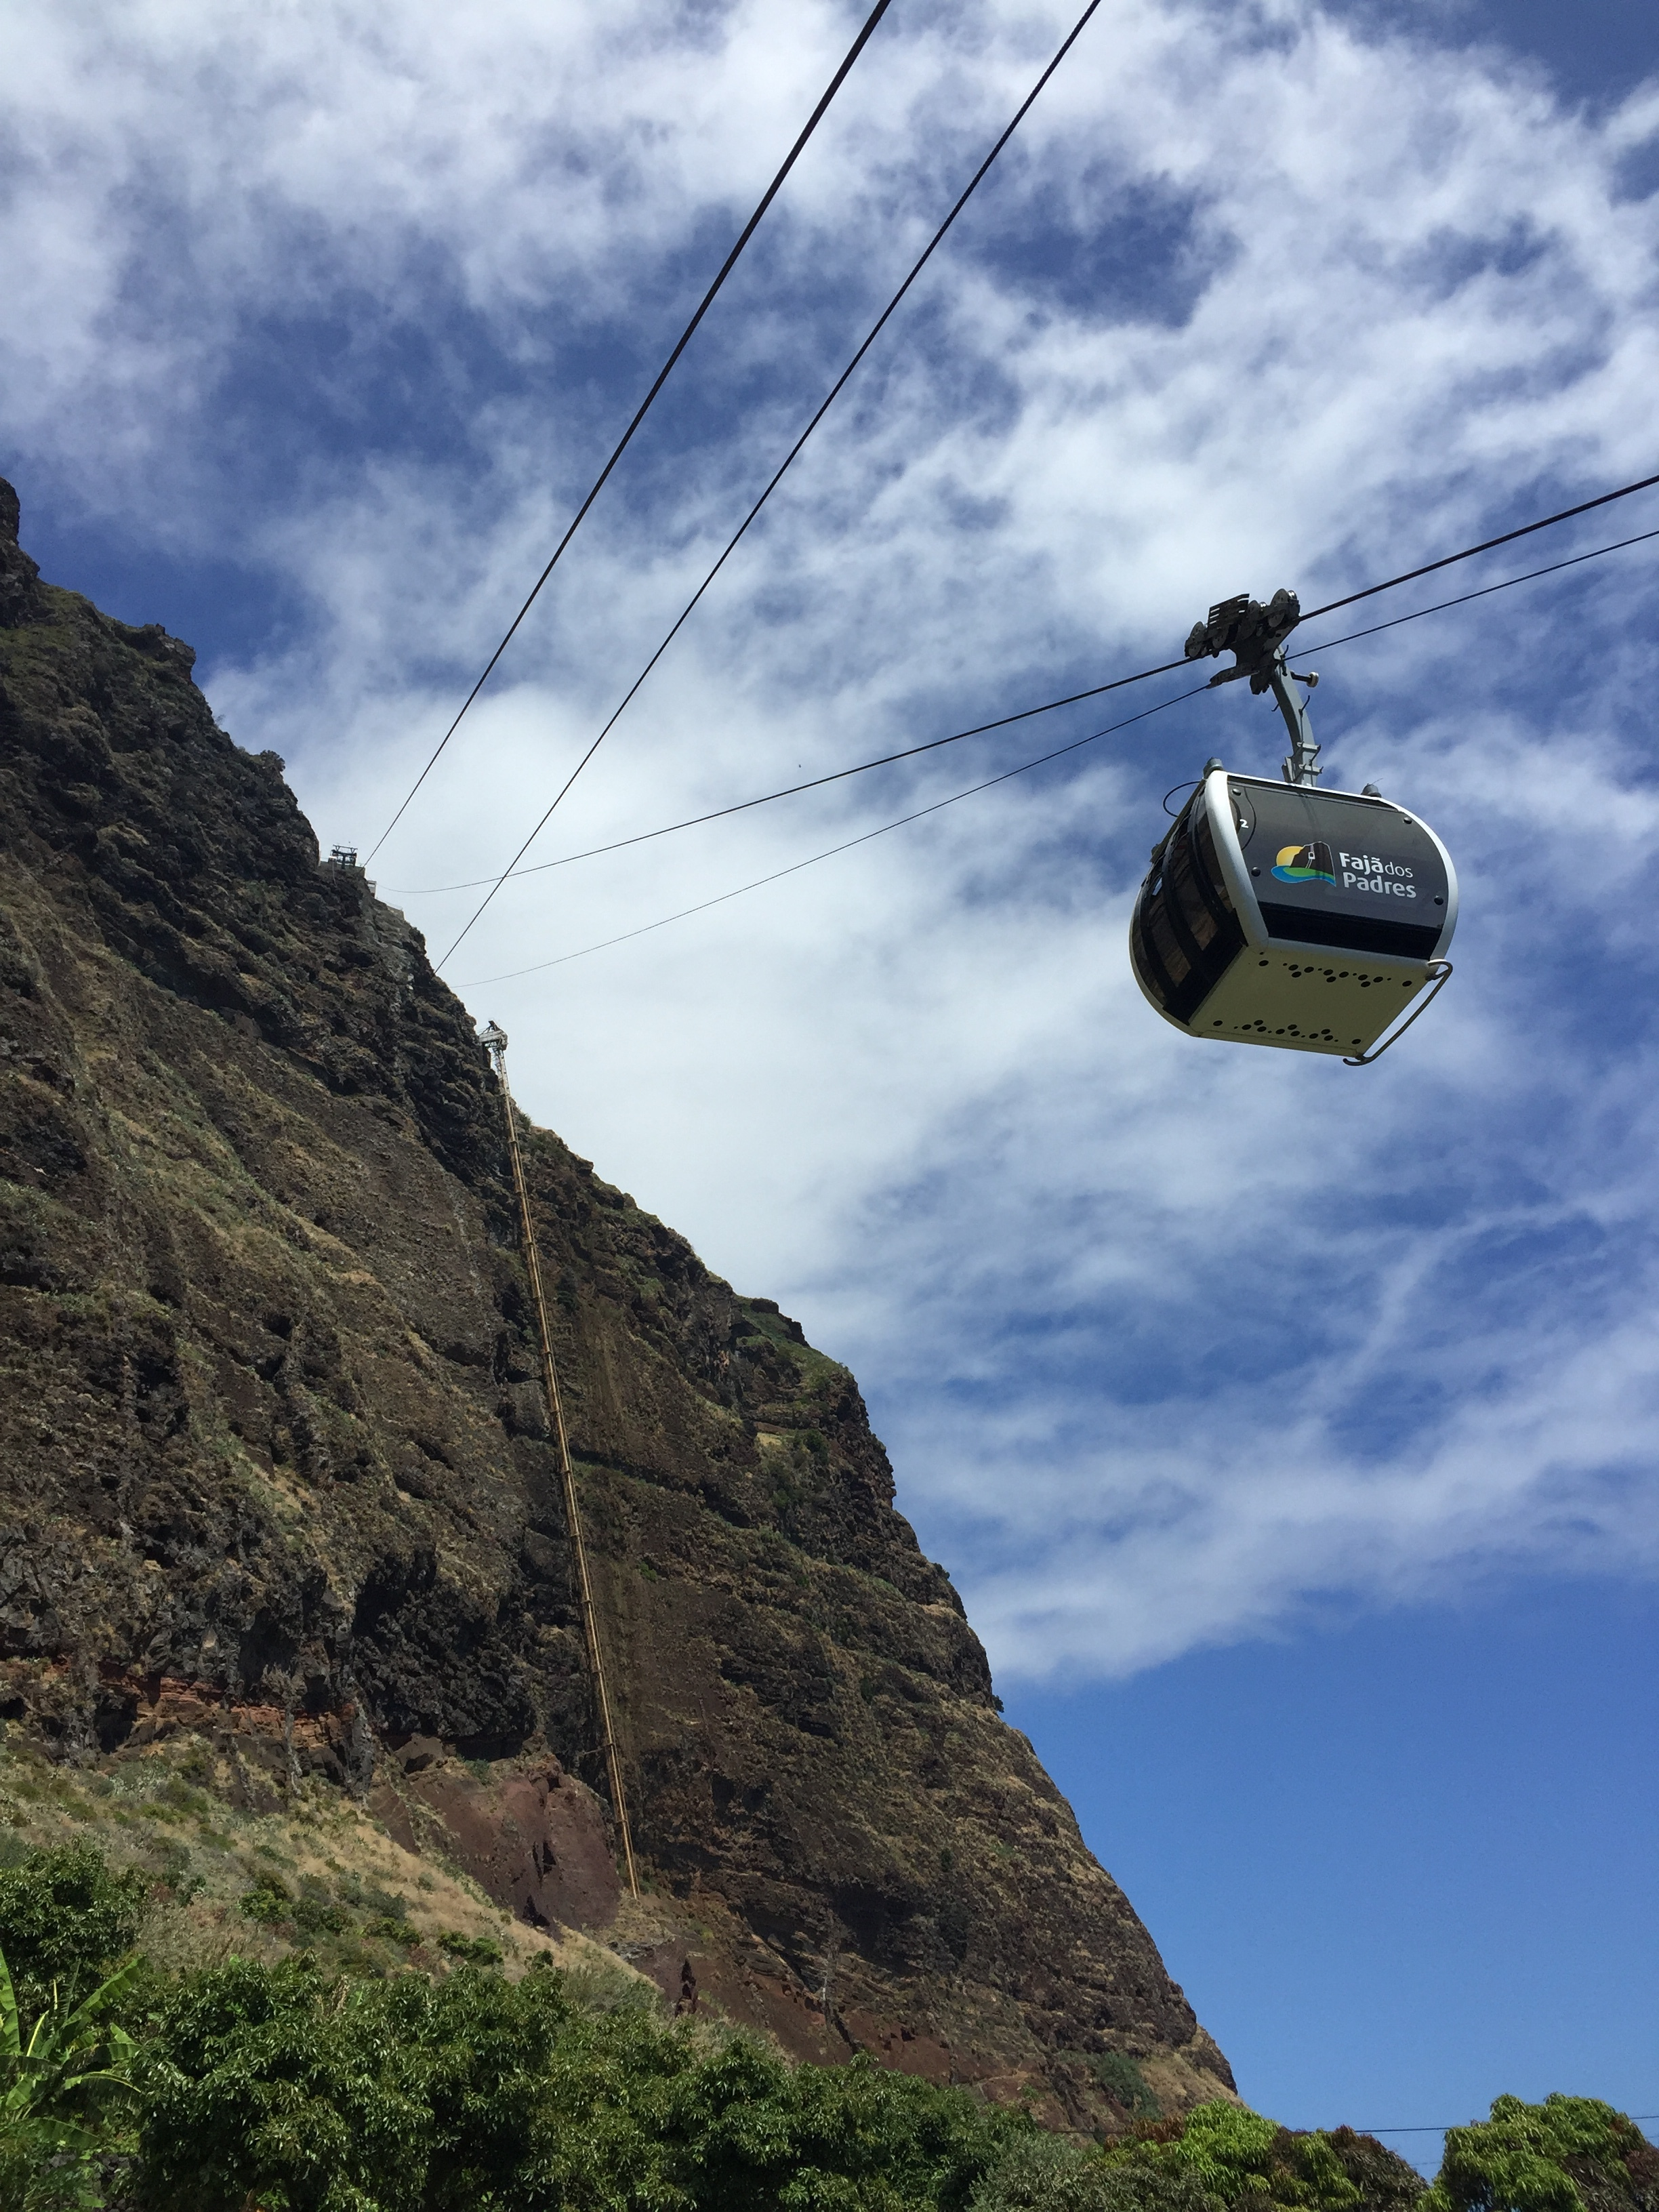 madeira cable car.JPG